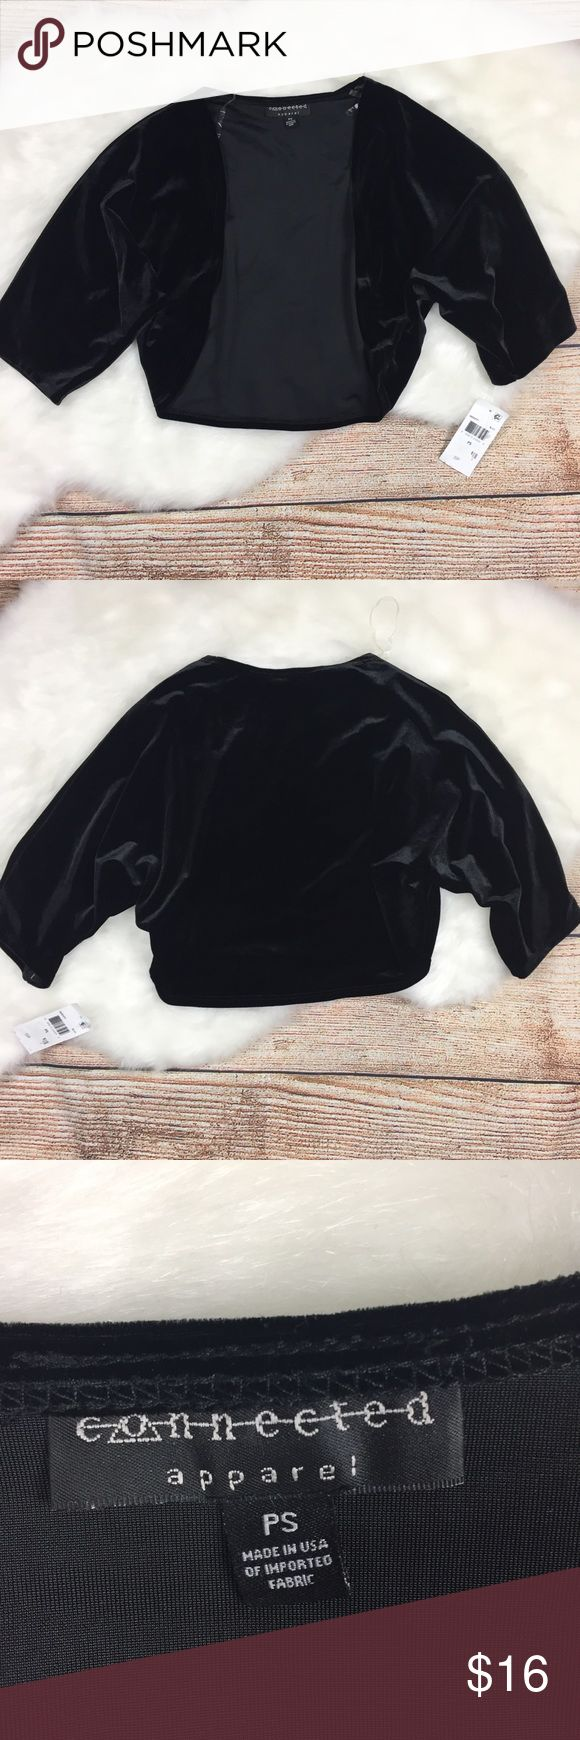 """🆕 connected apparel • faux velvet shrug New with tags! Connected Apparel black faux suede shrug cardigan.  Pit to pit: 15"""" Length: 15"""" Sleeve: 14.5"""" Connected Apparel Sweaters Cardigans"""